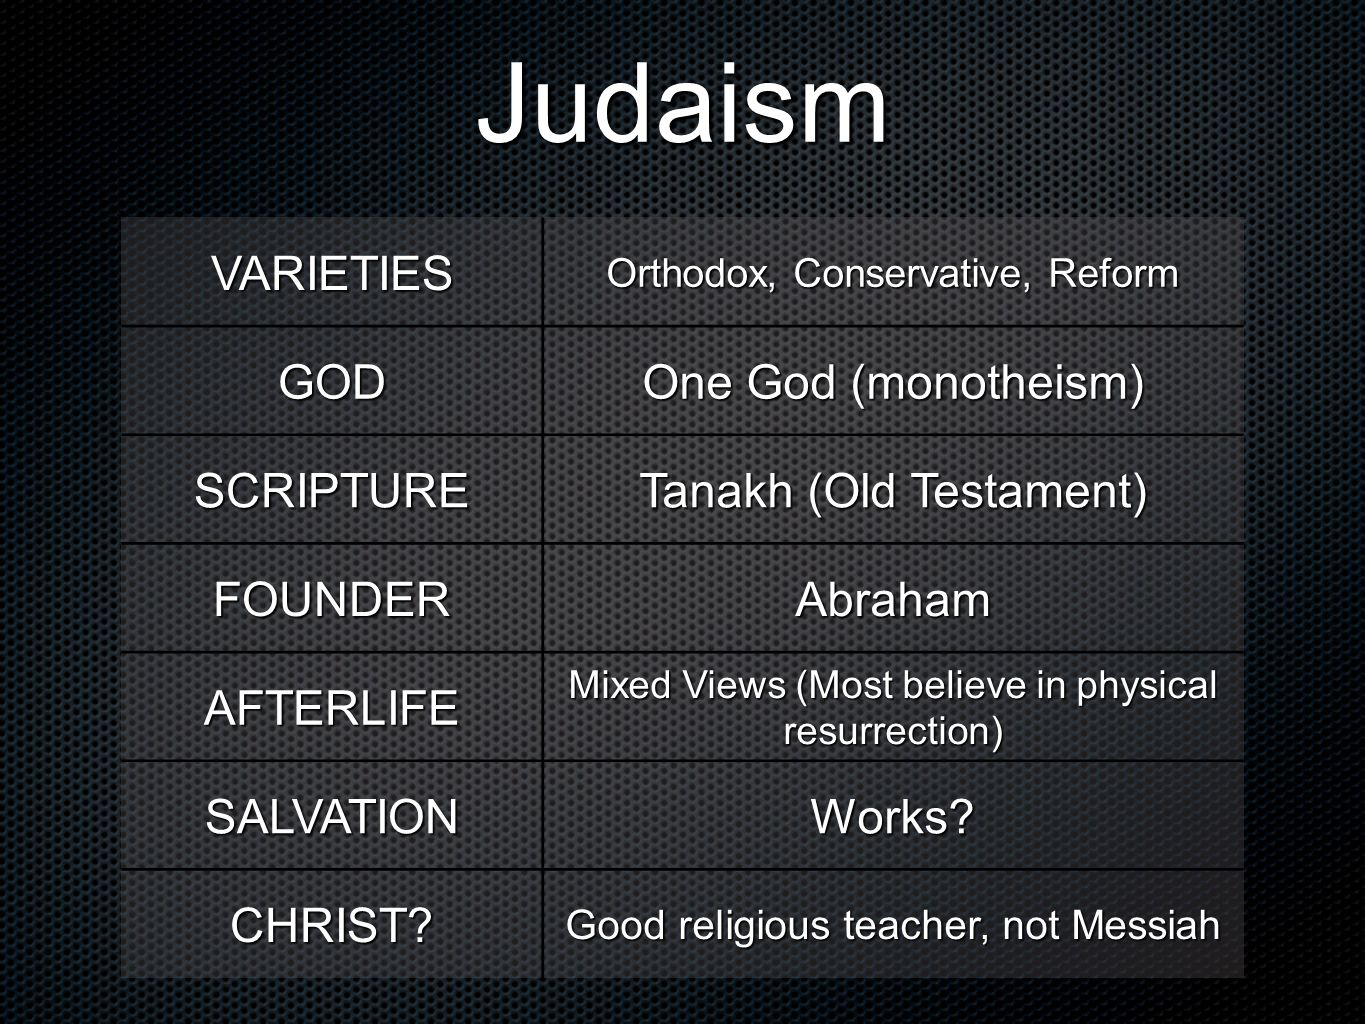 Judaism VARIETIES GOD One God (monotheism) SCRIPTURE